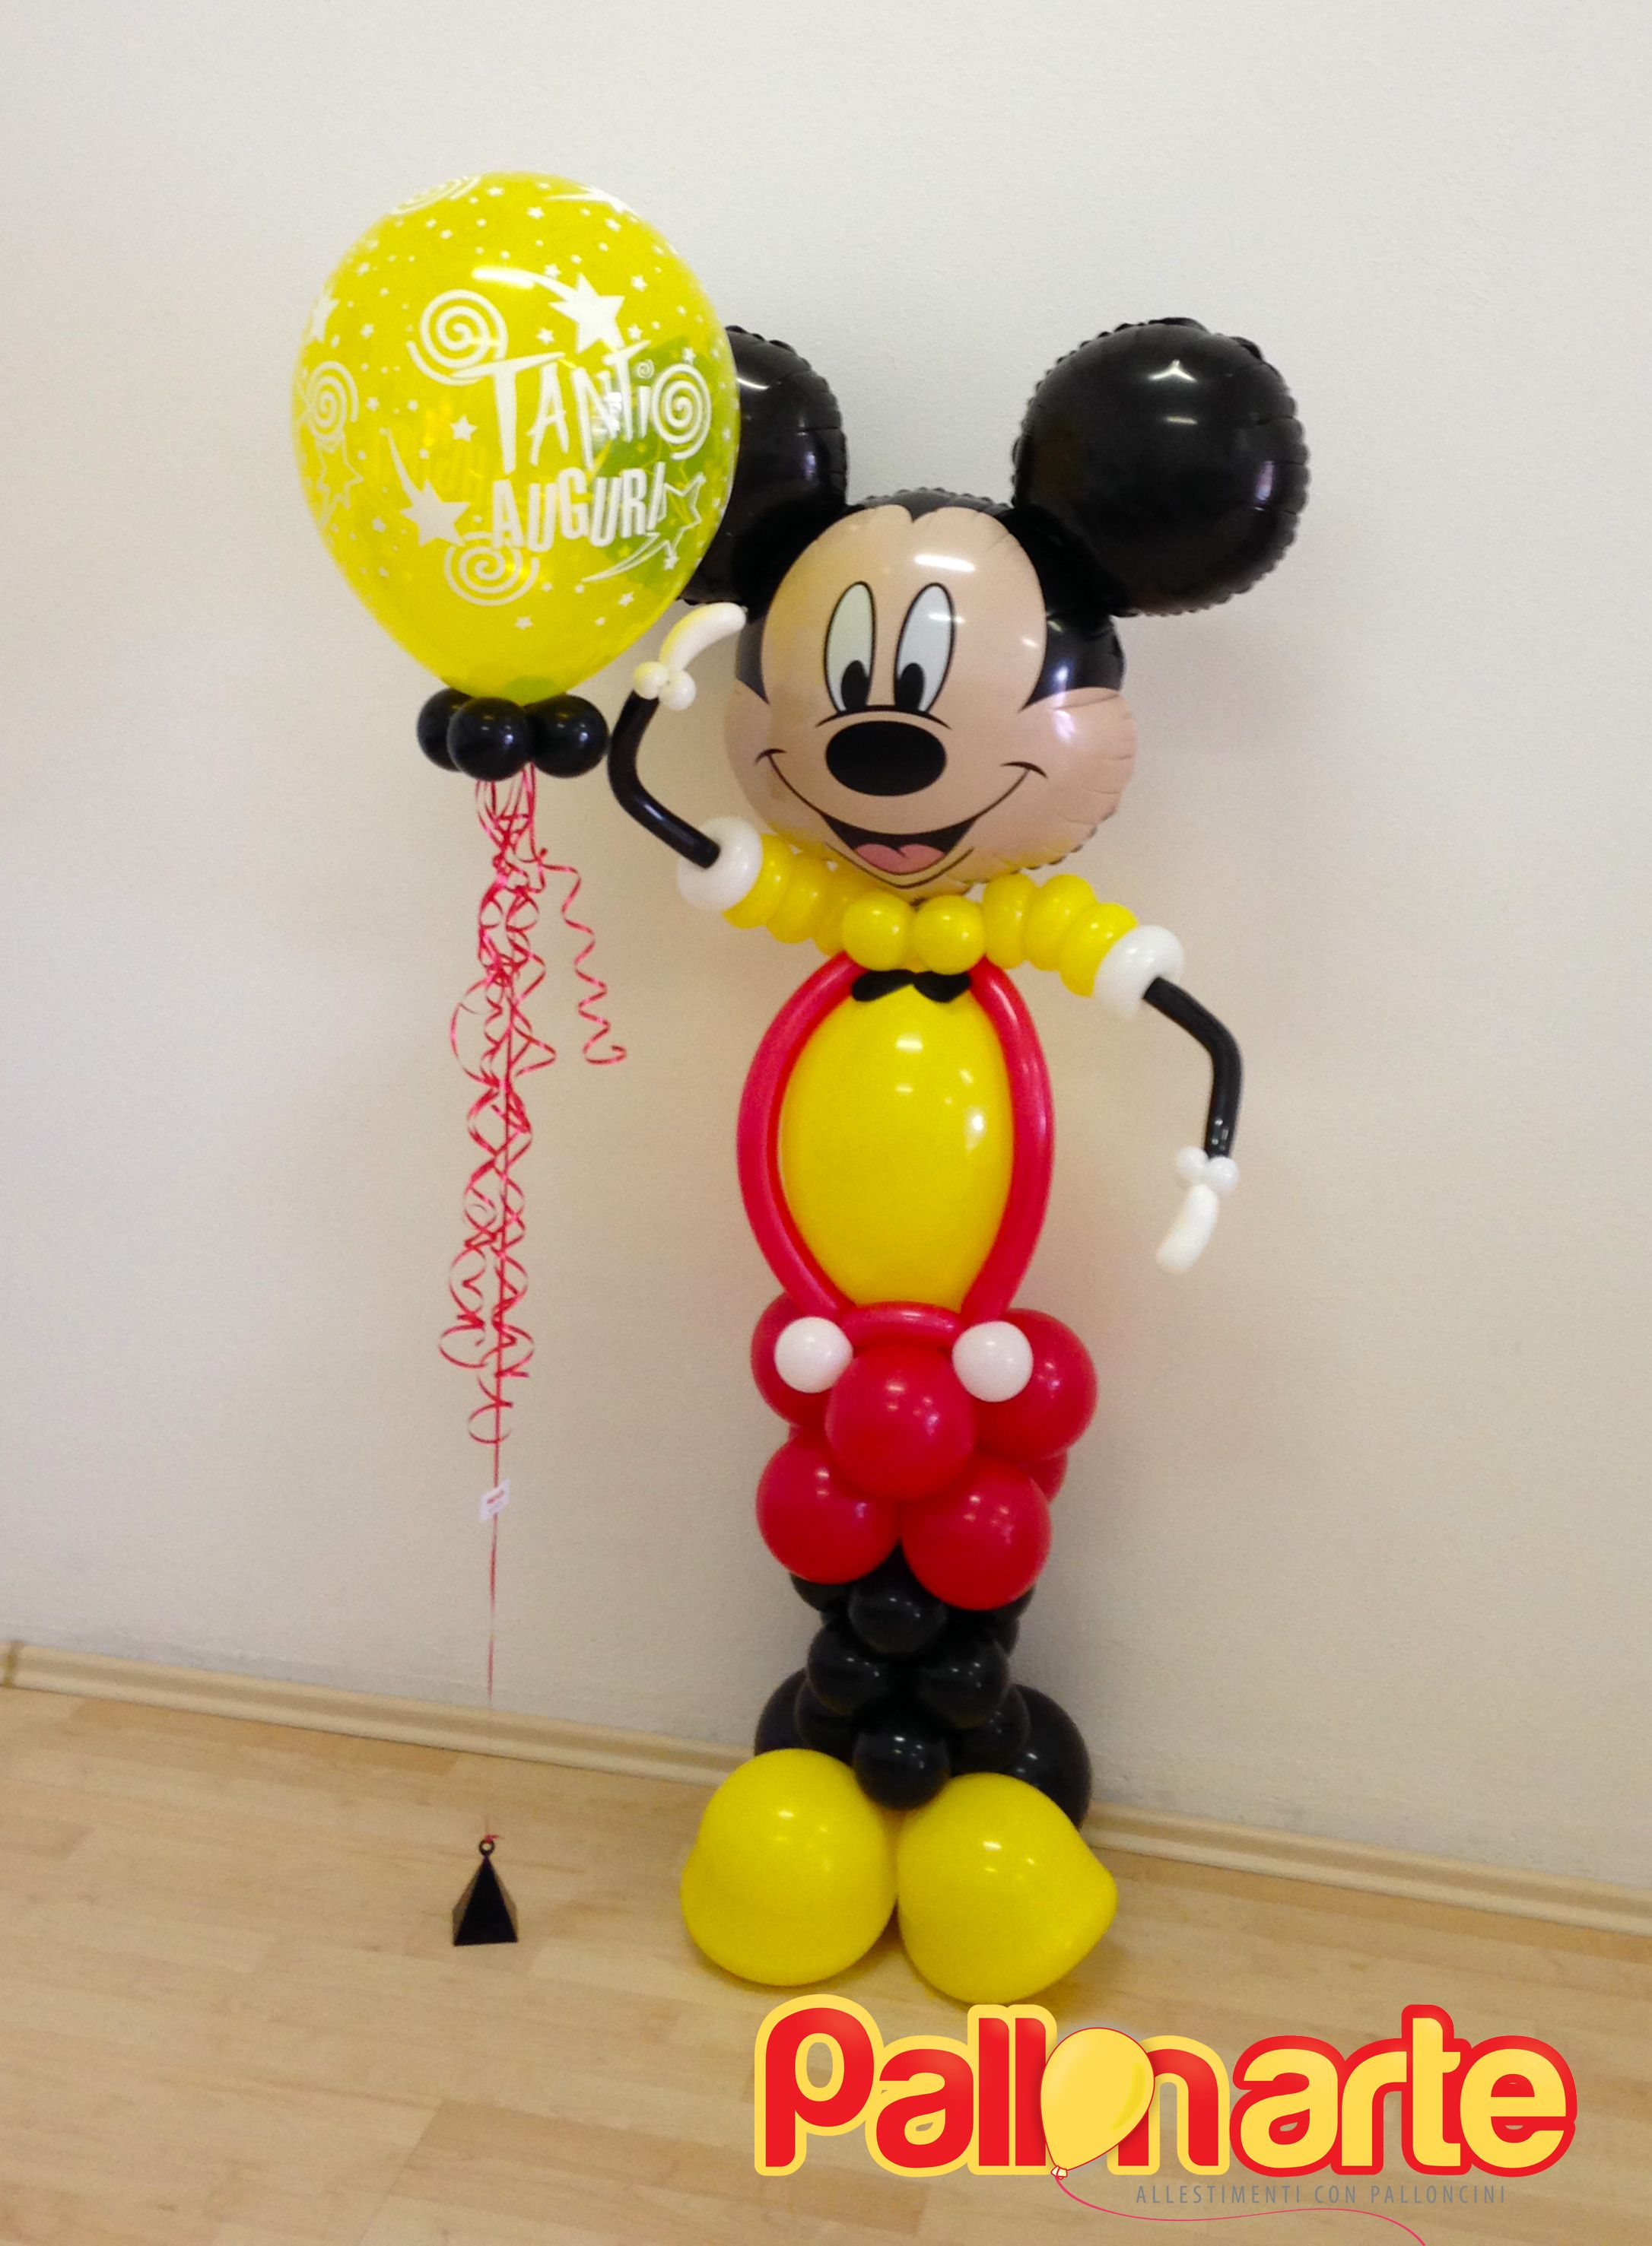 1000 images about balloon decor for kids on pinterest for Balloon decoration guide